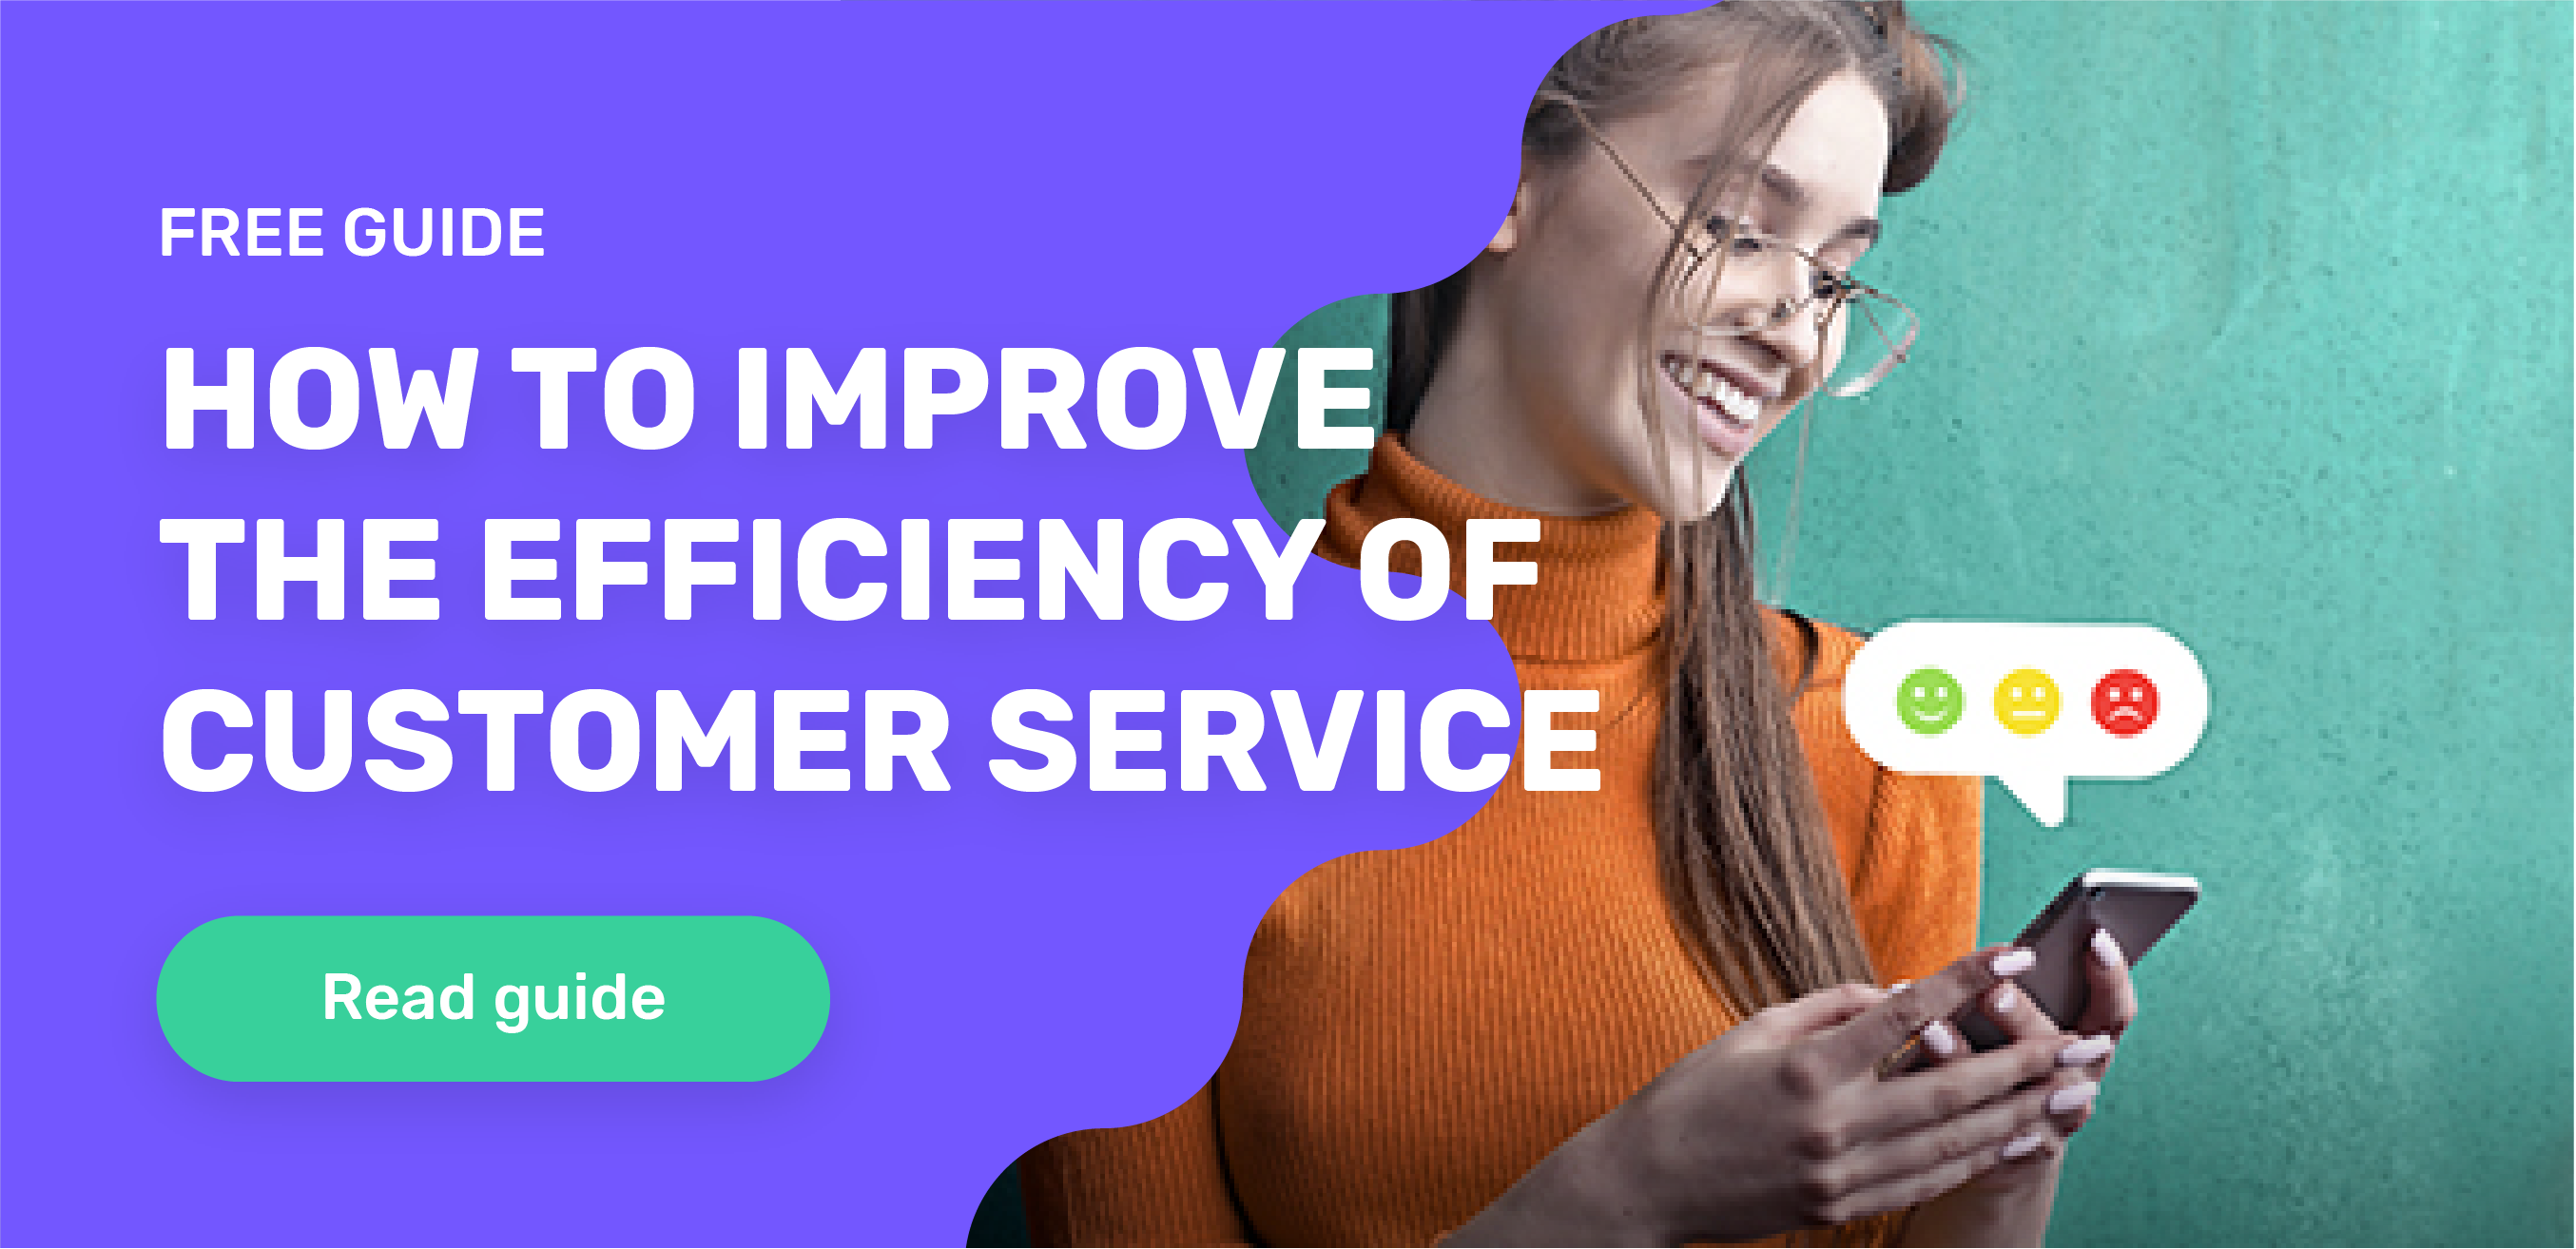 Read our How to Improve Customer Service efficiency How-To Guide